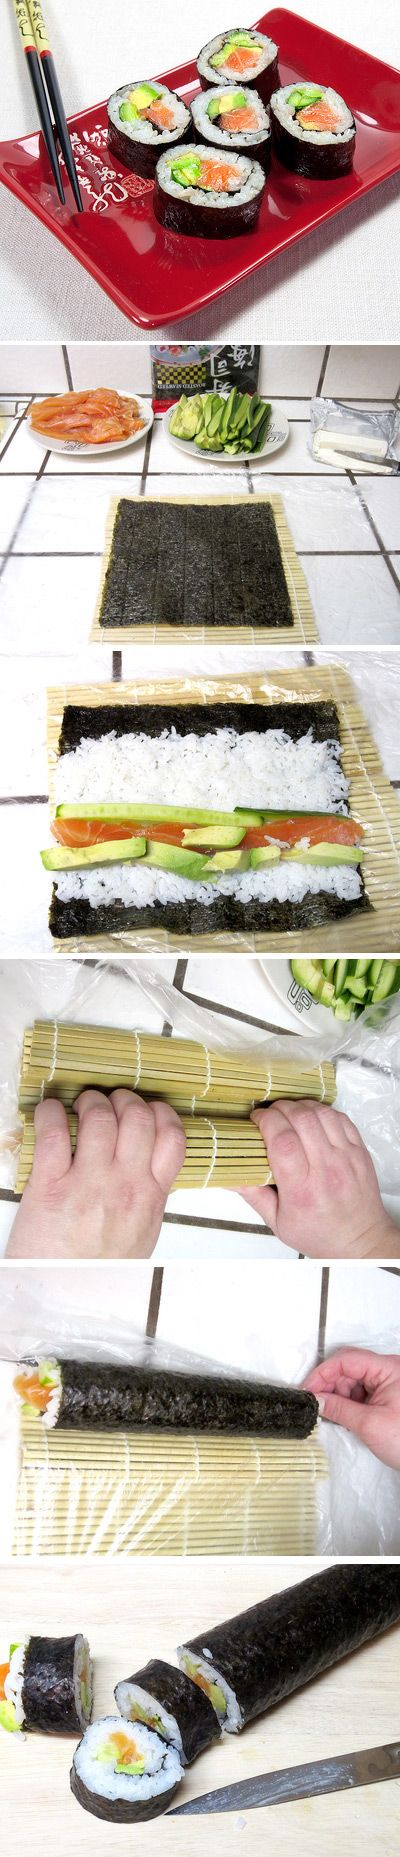 A step by step tutorial how to make sushi rolls at home. Click for recipe: I cant let myself look at this recipe until AFTER the pregnancy (I wont be able to help myself) !!